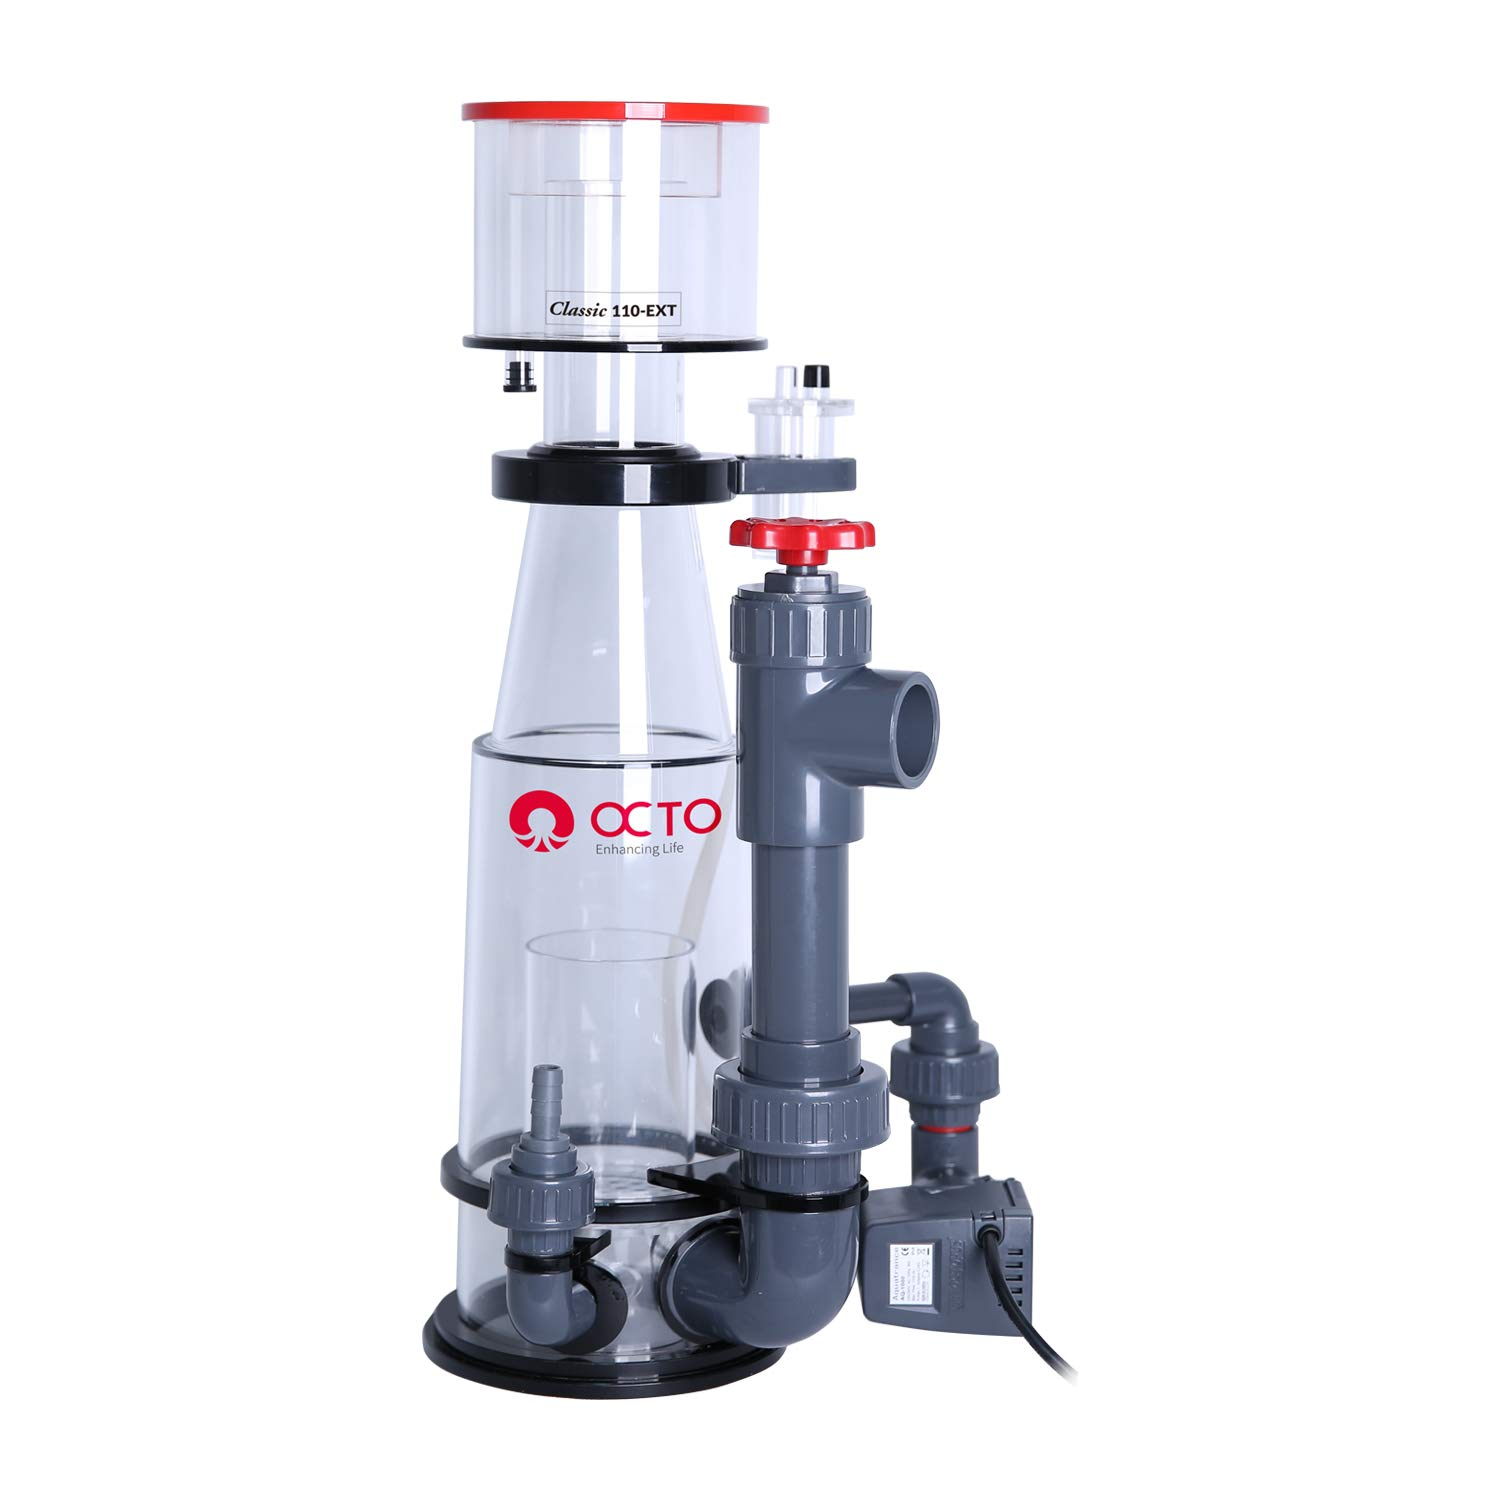 Reef Octopus Classic 110-INT Needle Wheel Protein Skimmer for Aquarium by Reef Octopus